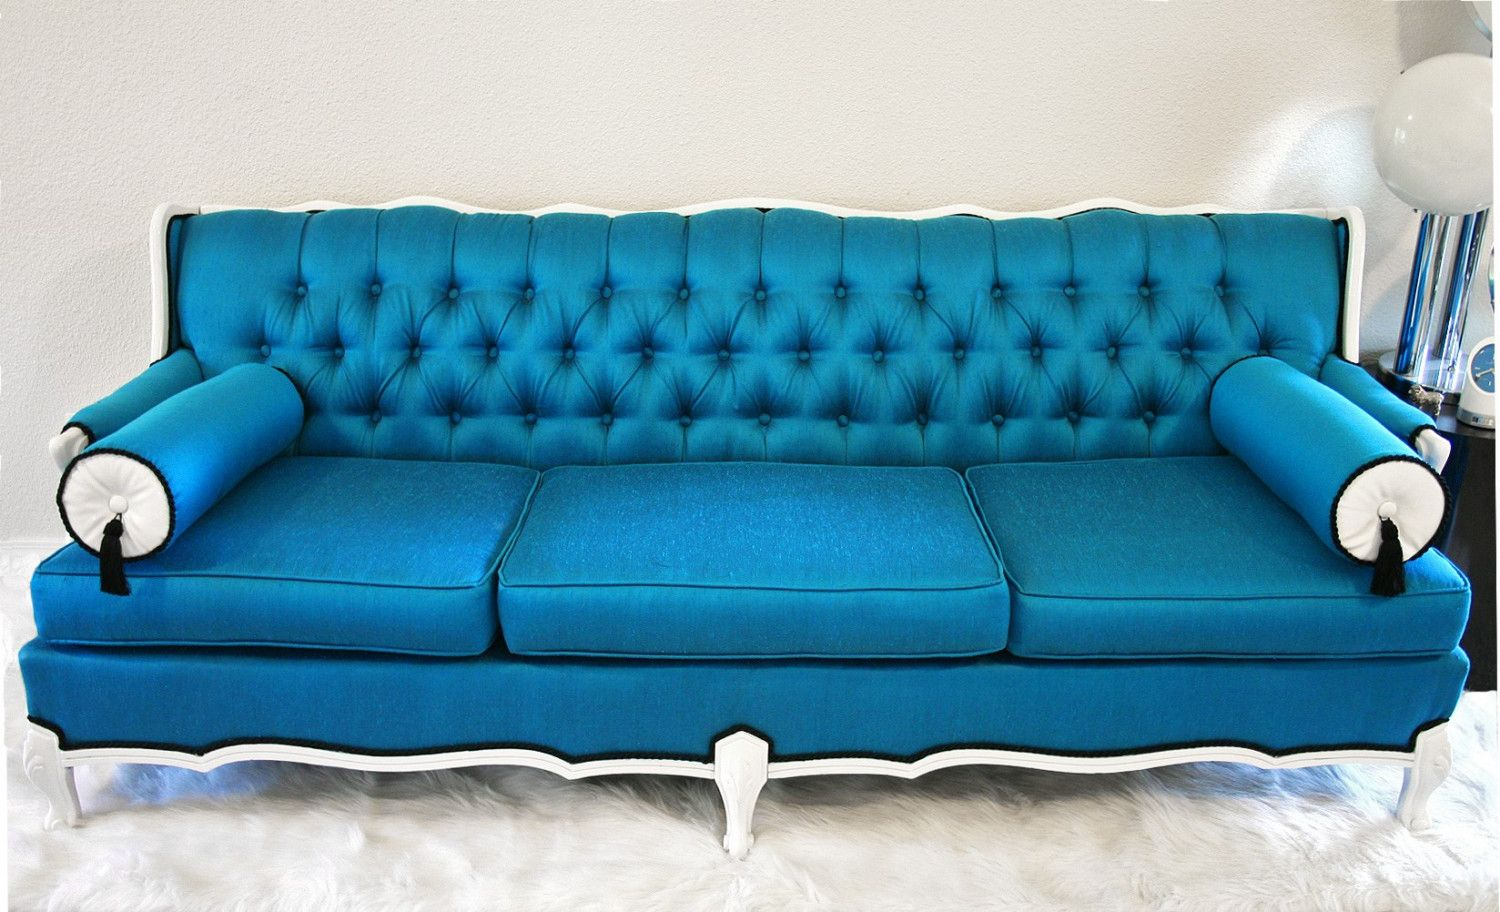 In Search Of Tufted Furniture Krrb Blog Blue Leather Sofa Blue Couch Decor Blue Tufted Sofa